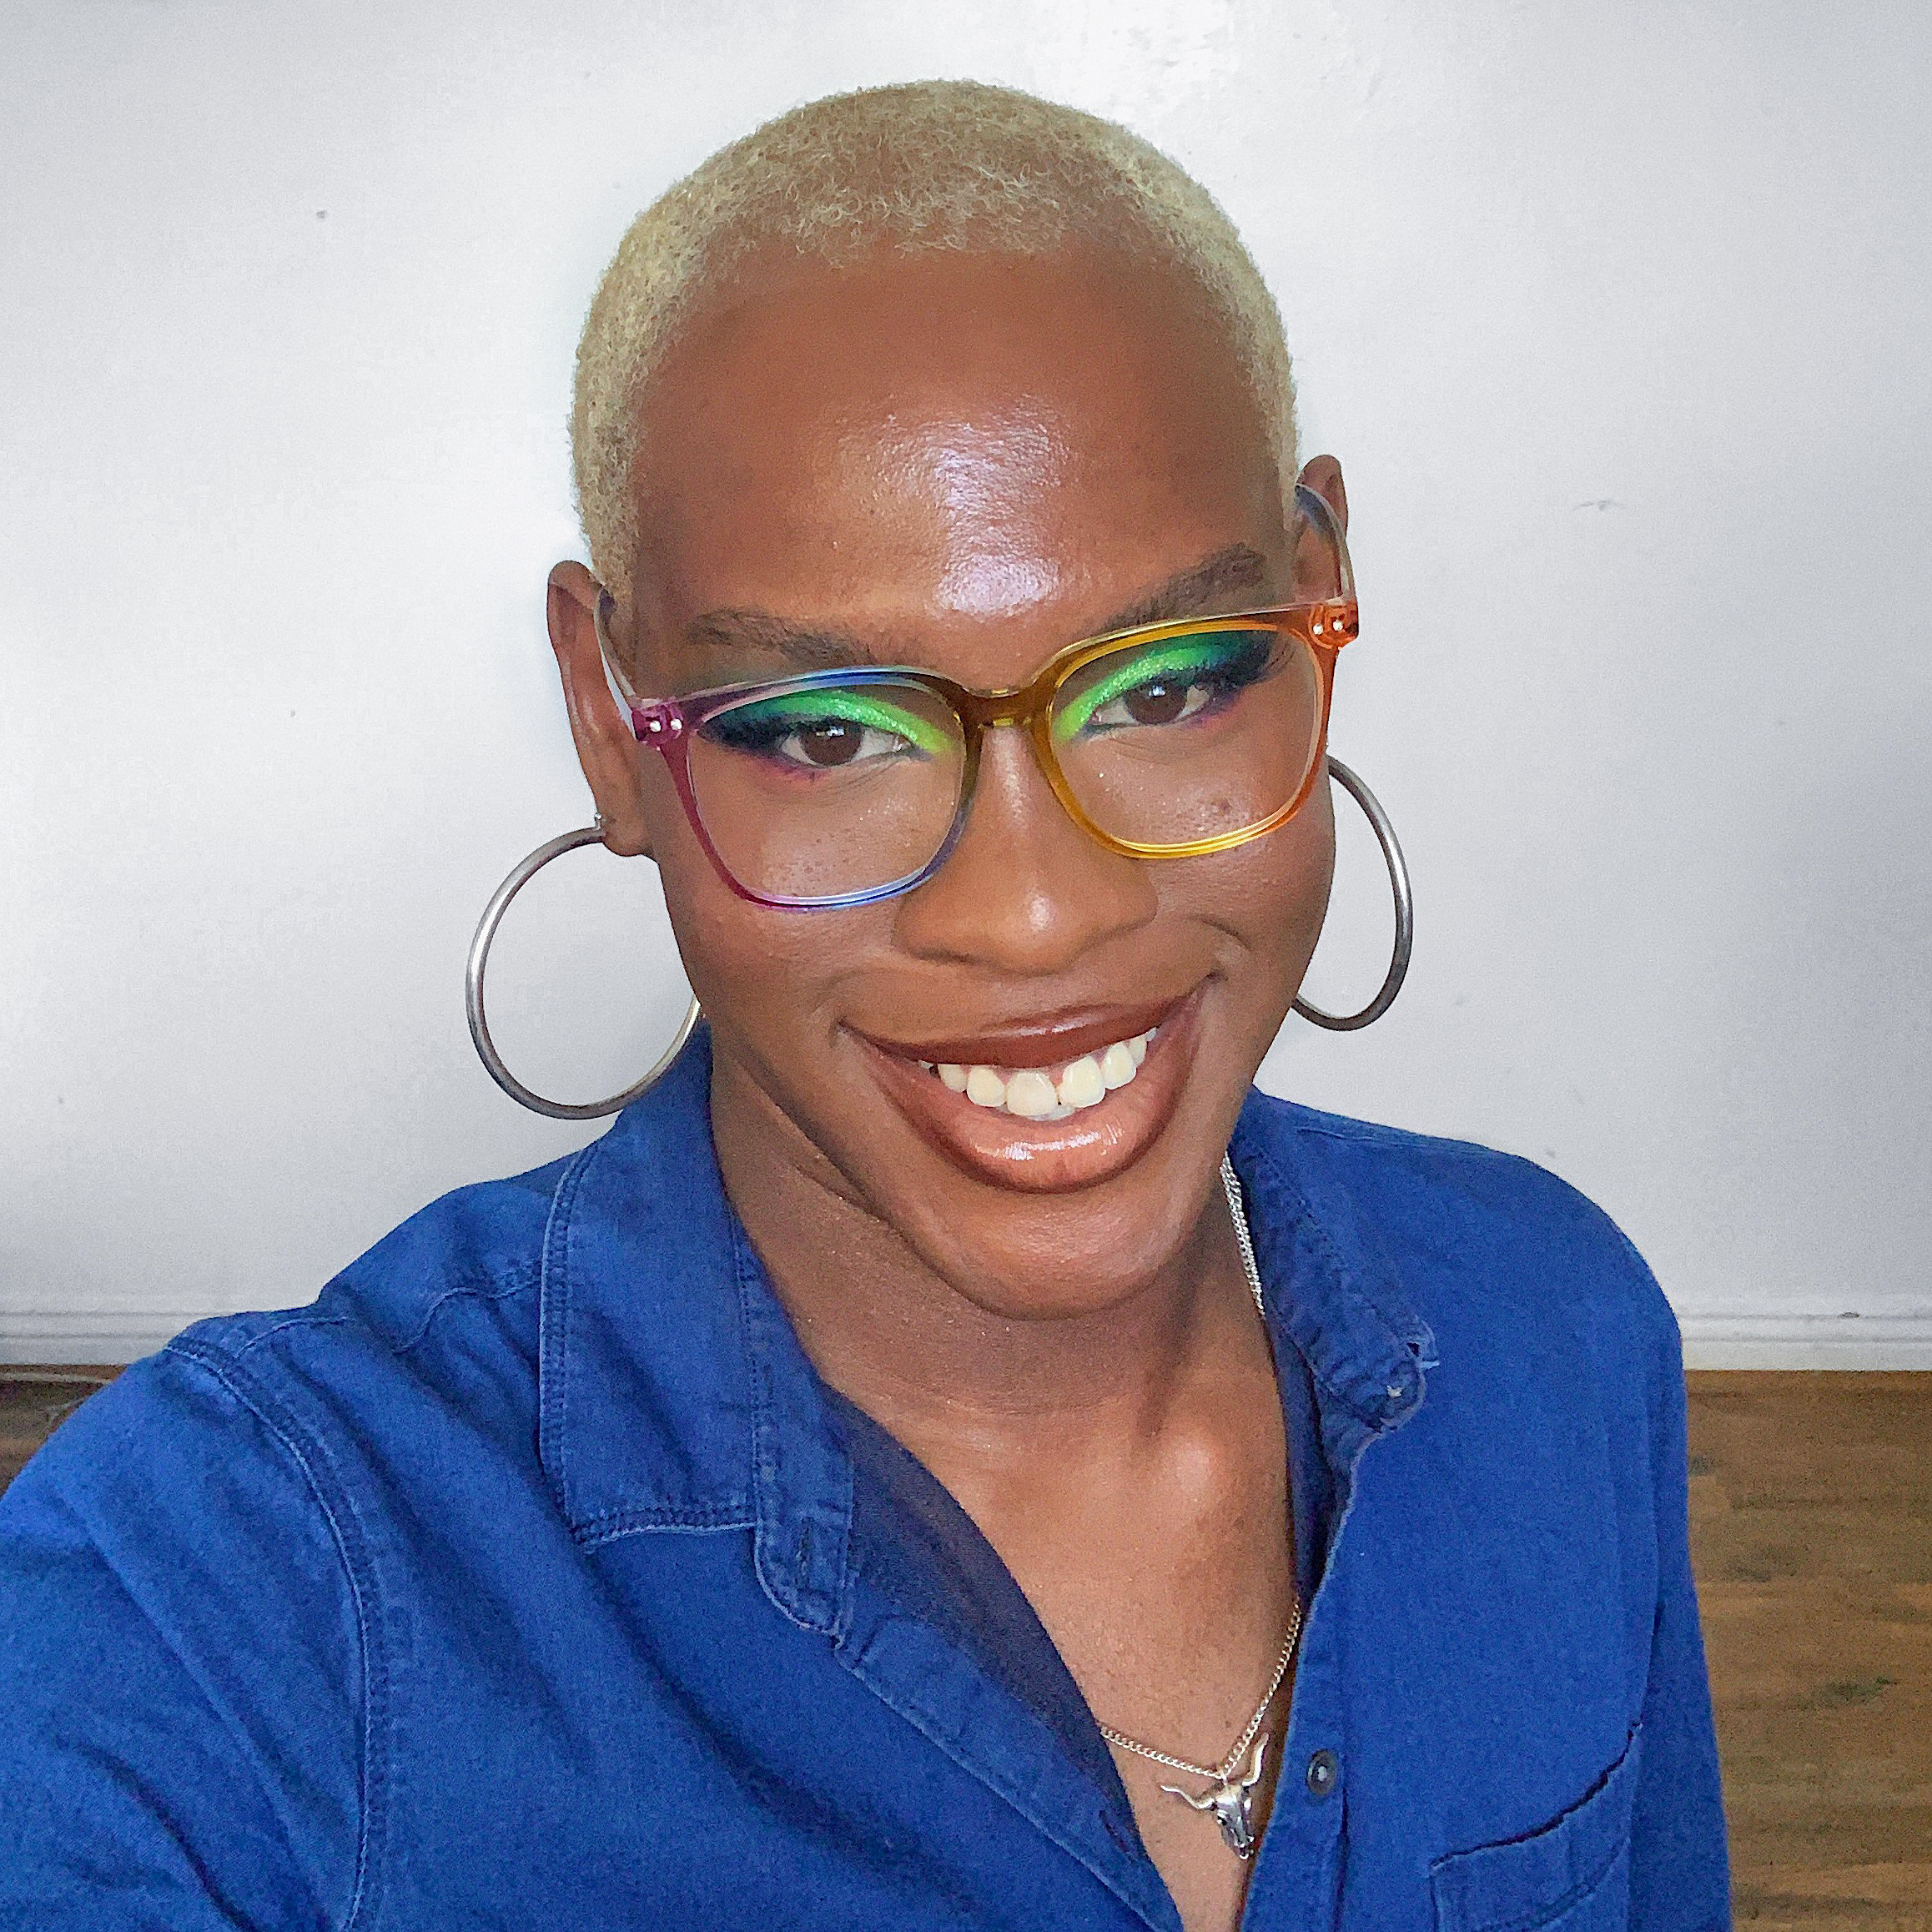 A person wearing rainbow-colored eyeglasses